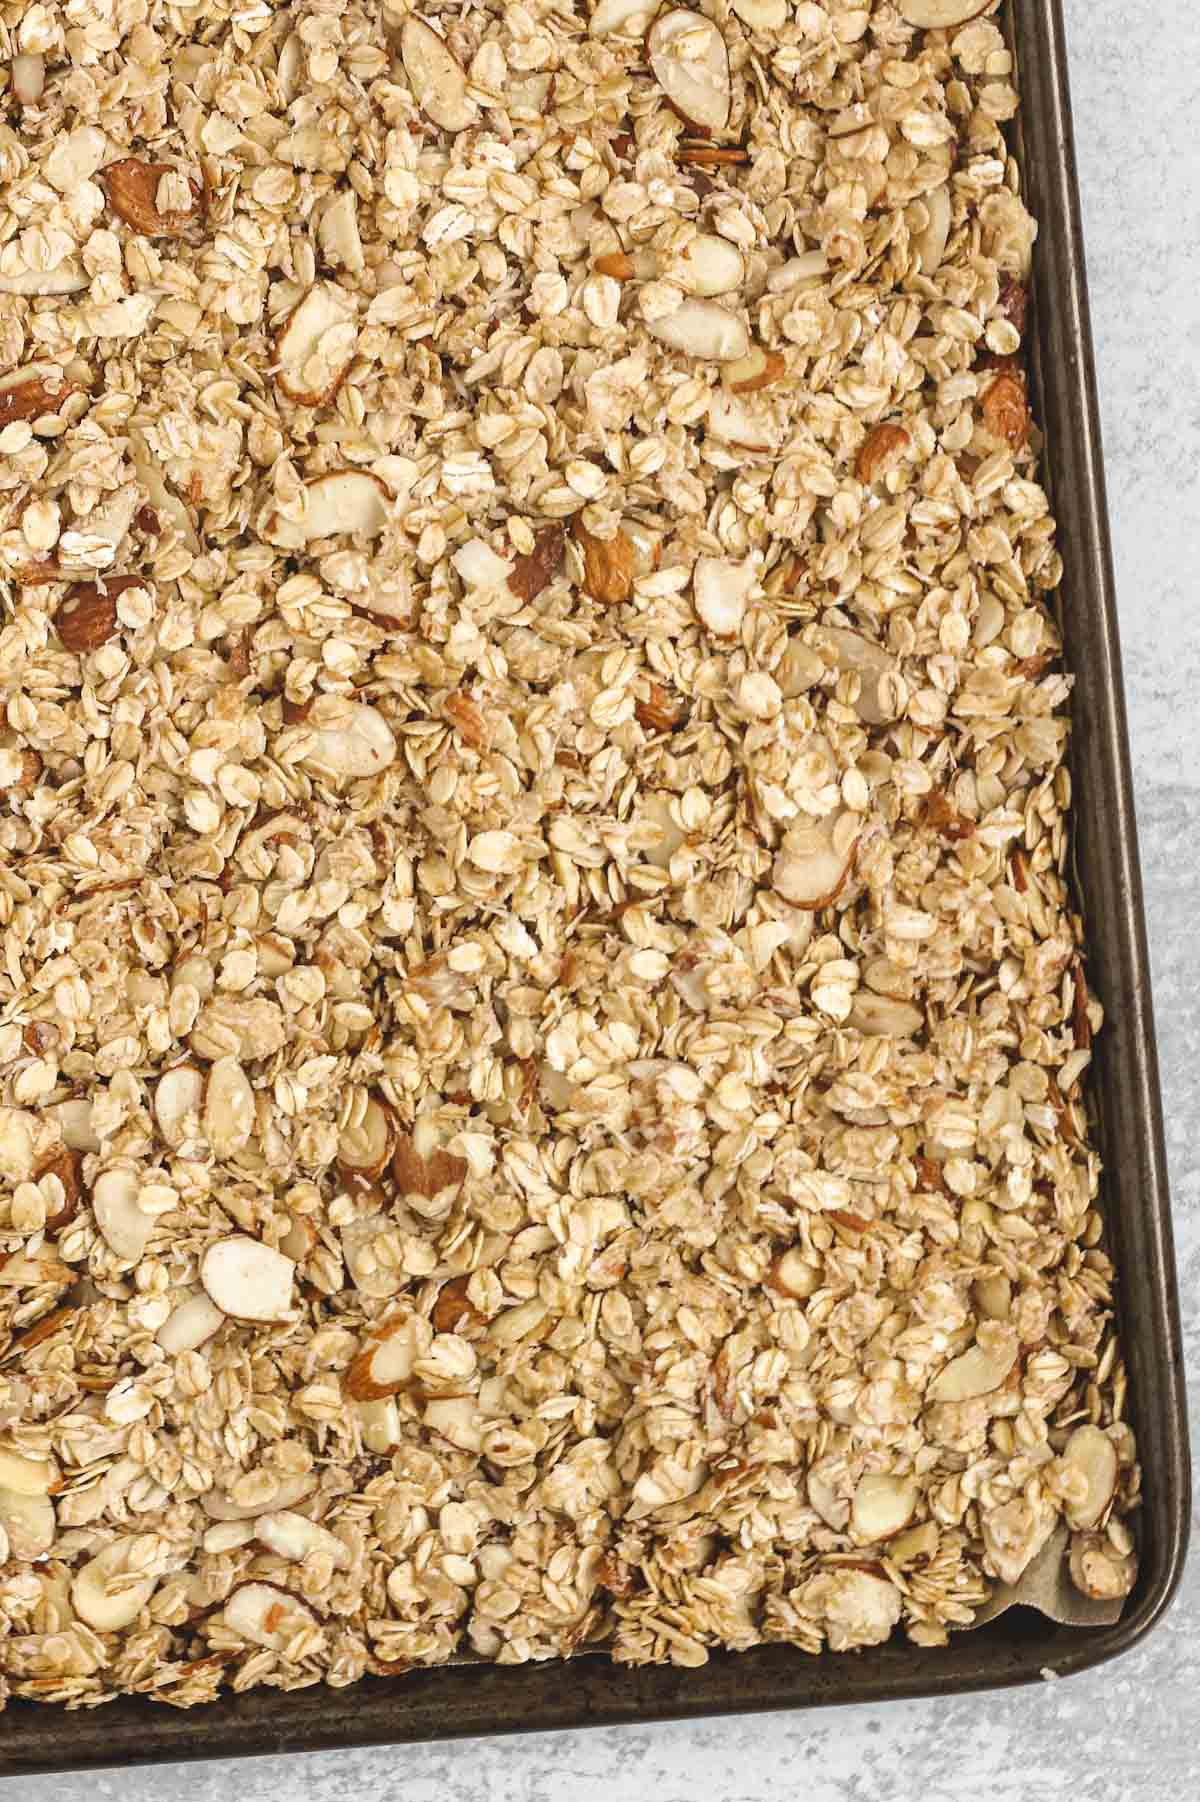 granola on baking sheet before being baked